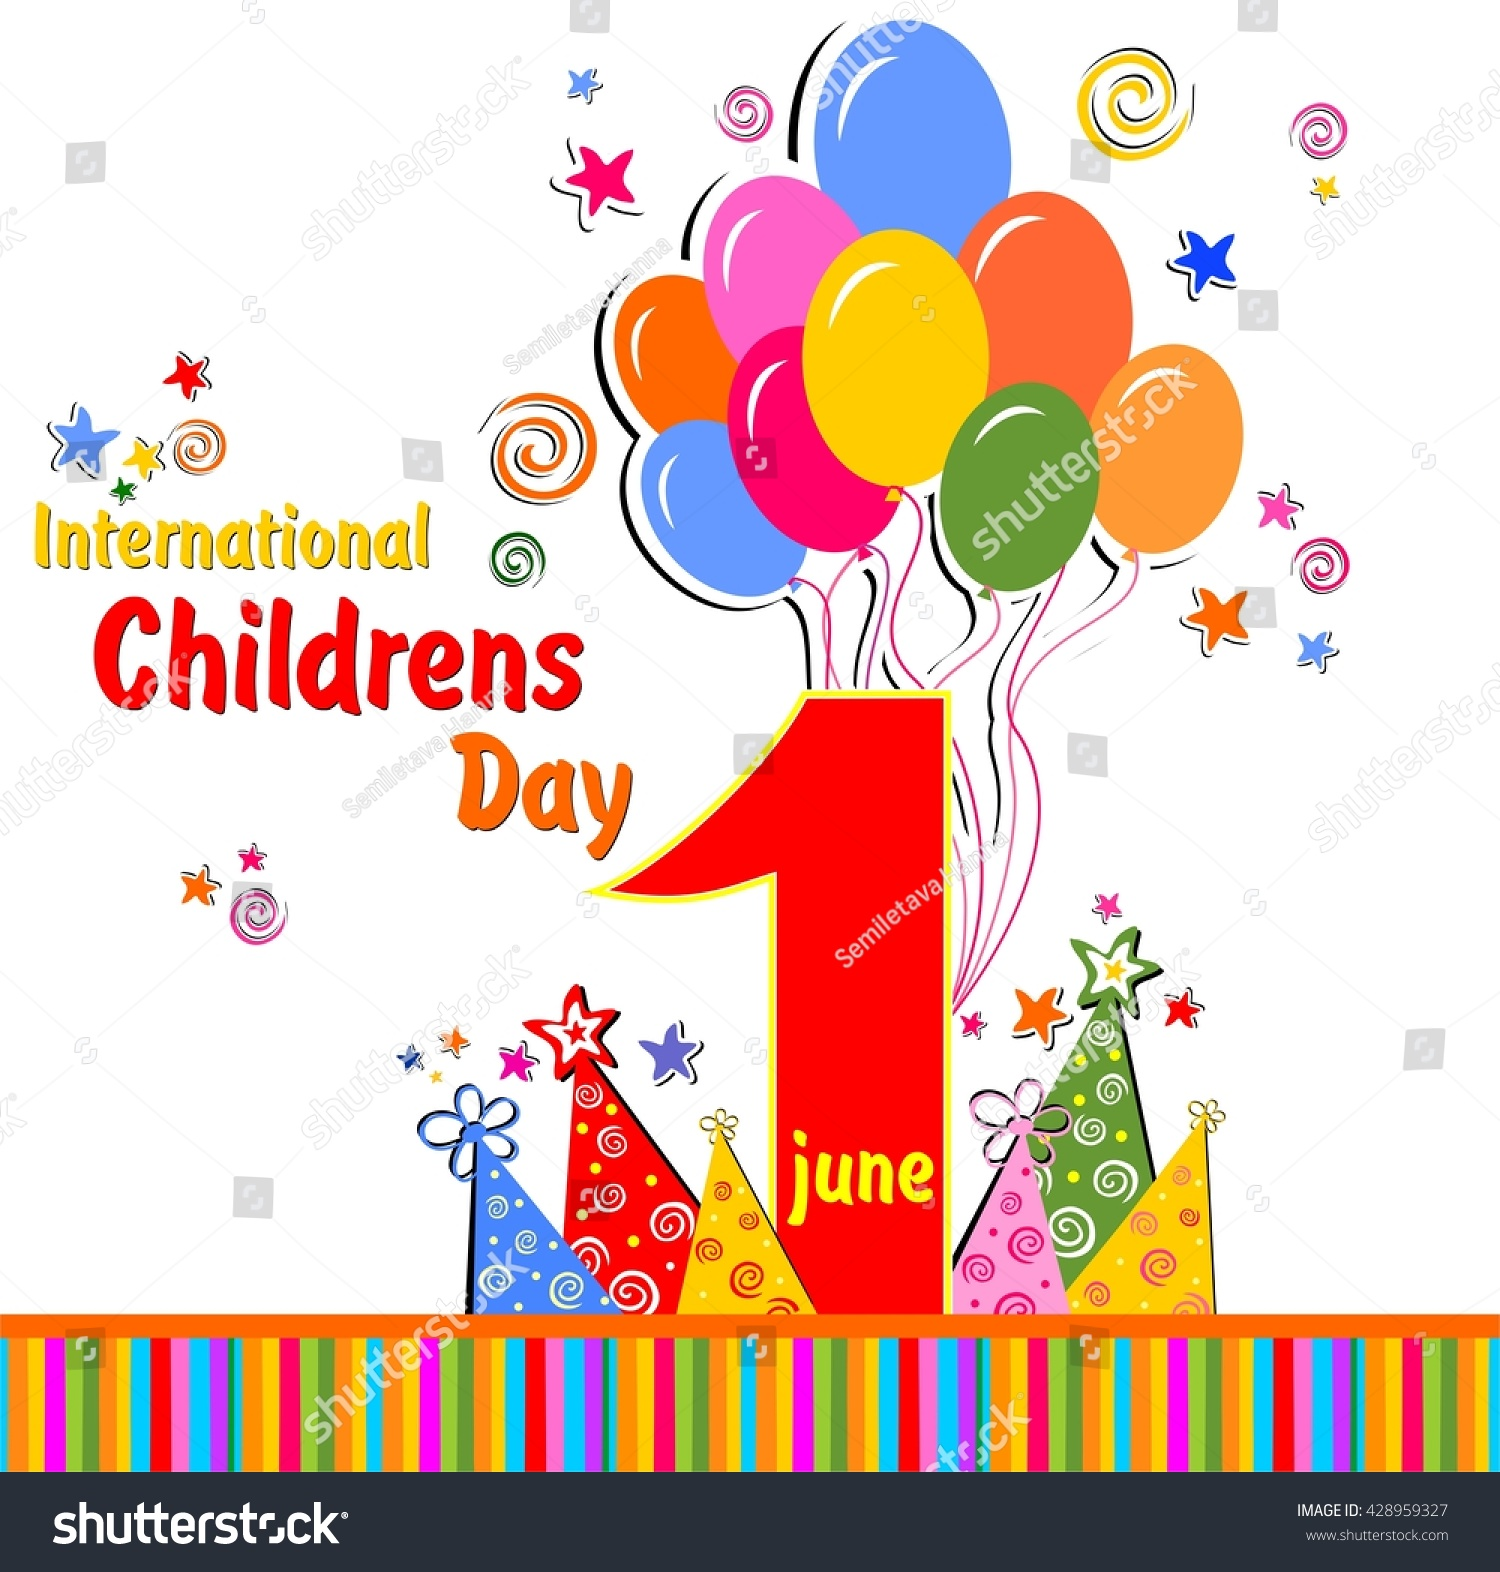 1 June International Childrens Day Background Stock Illustration